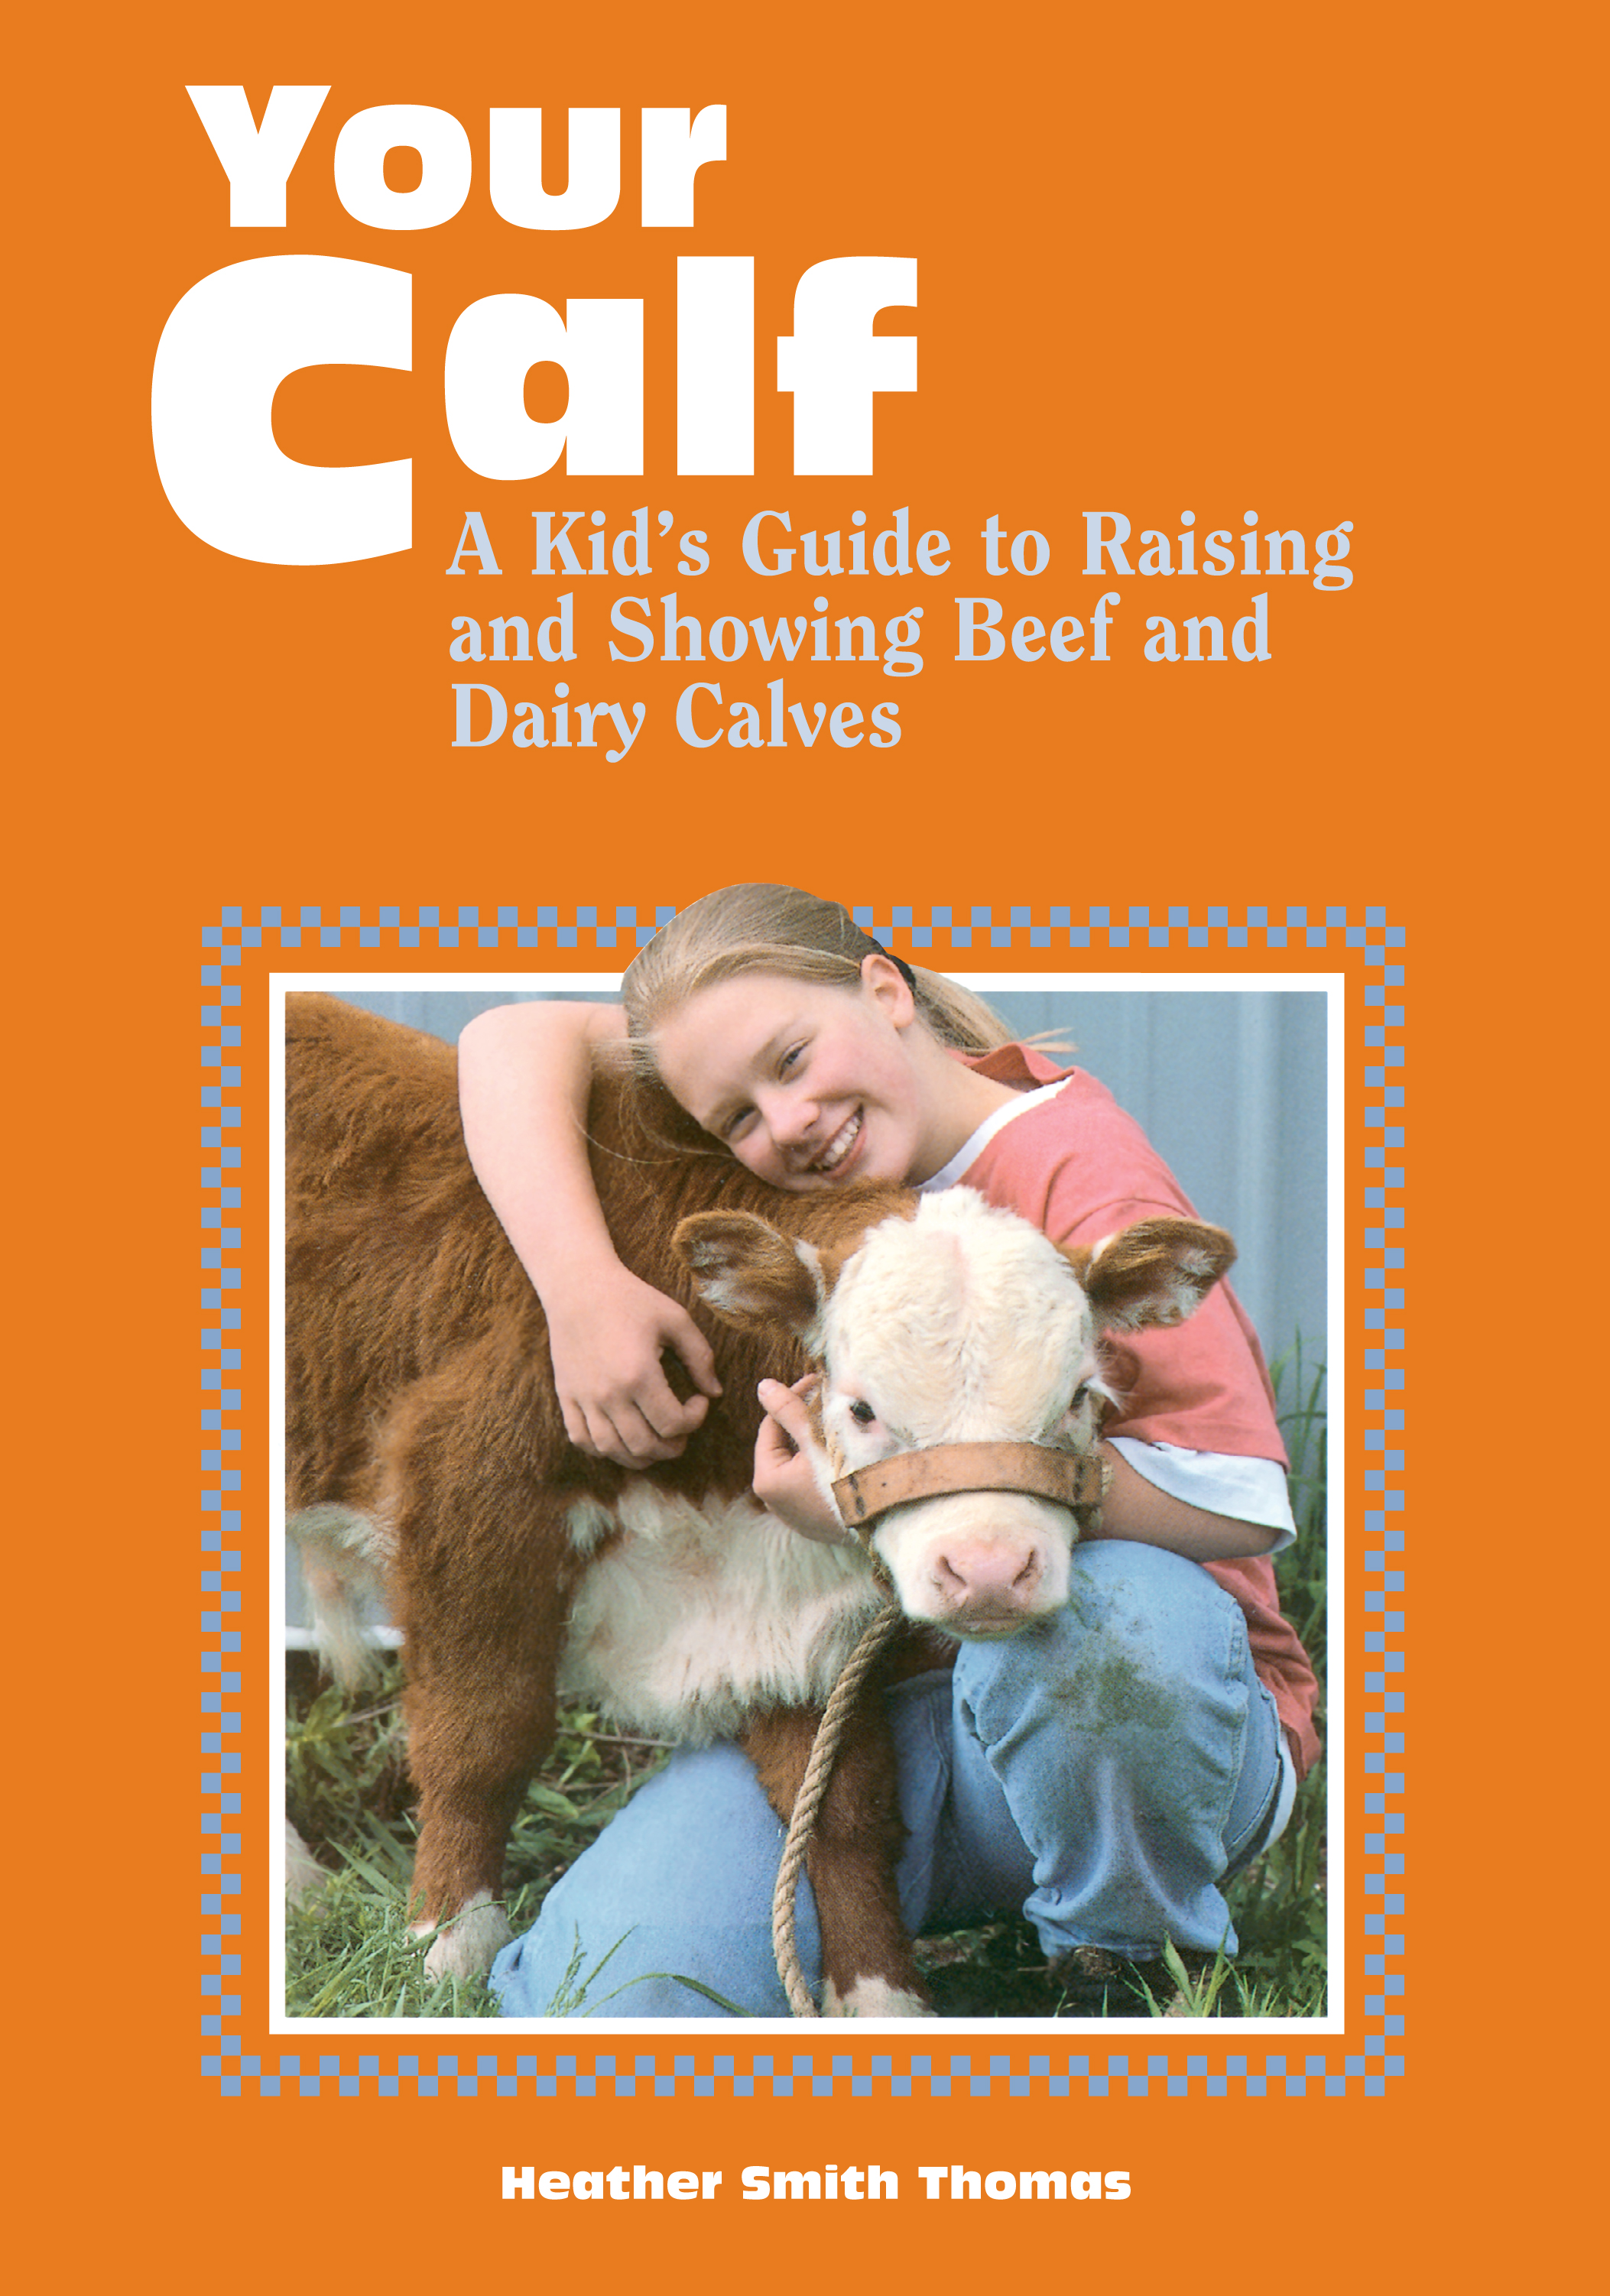 Your Calf A Kid's Guide to Raising and Showing Beef and Dairy Calves - Heather Smith Thomas